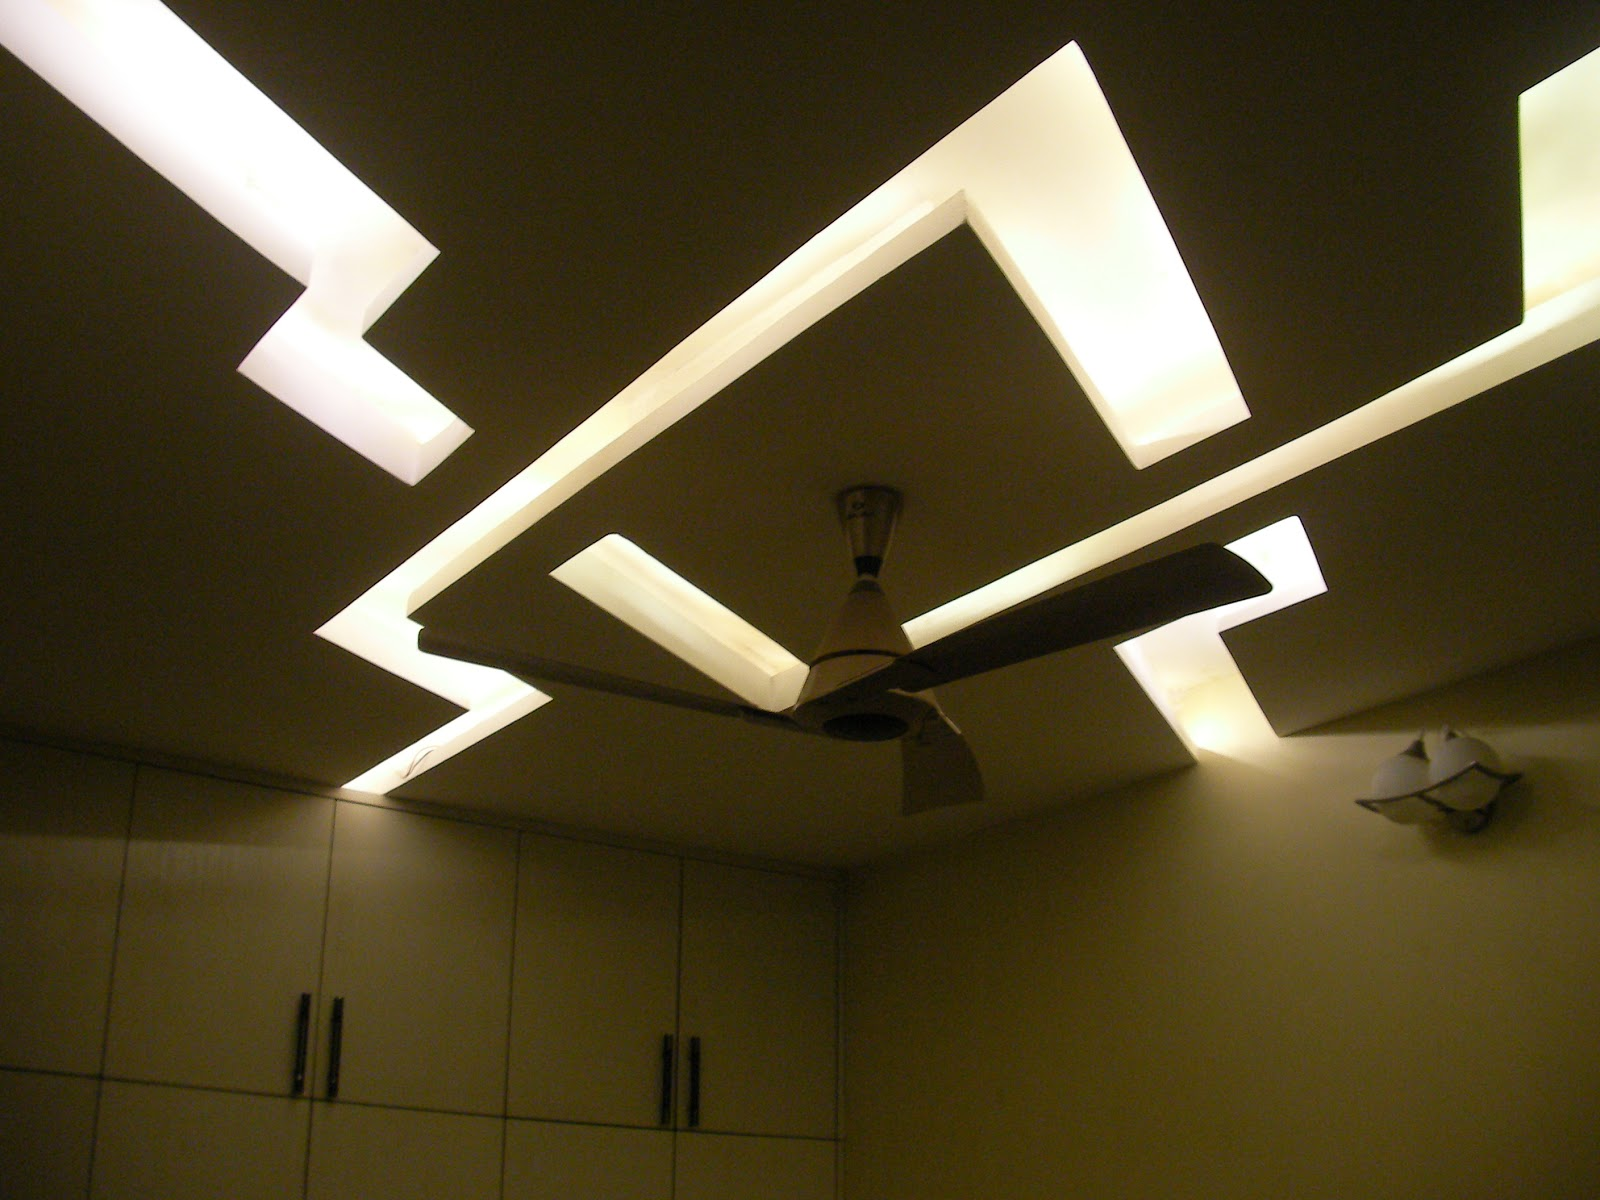 Living room false ceiling designs 2014 - Bathroom false ceiling designs ...